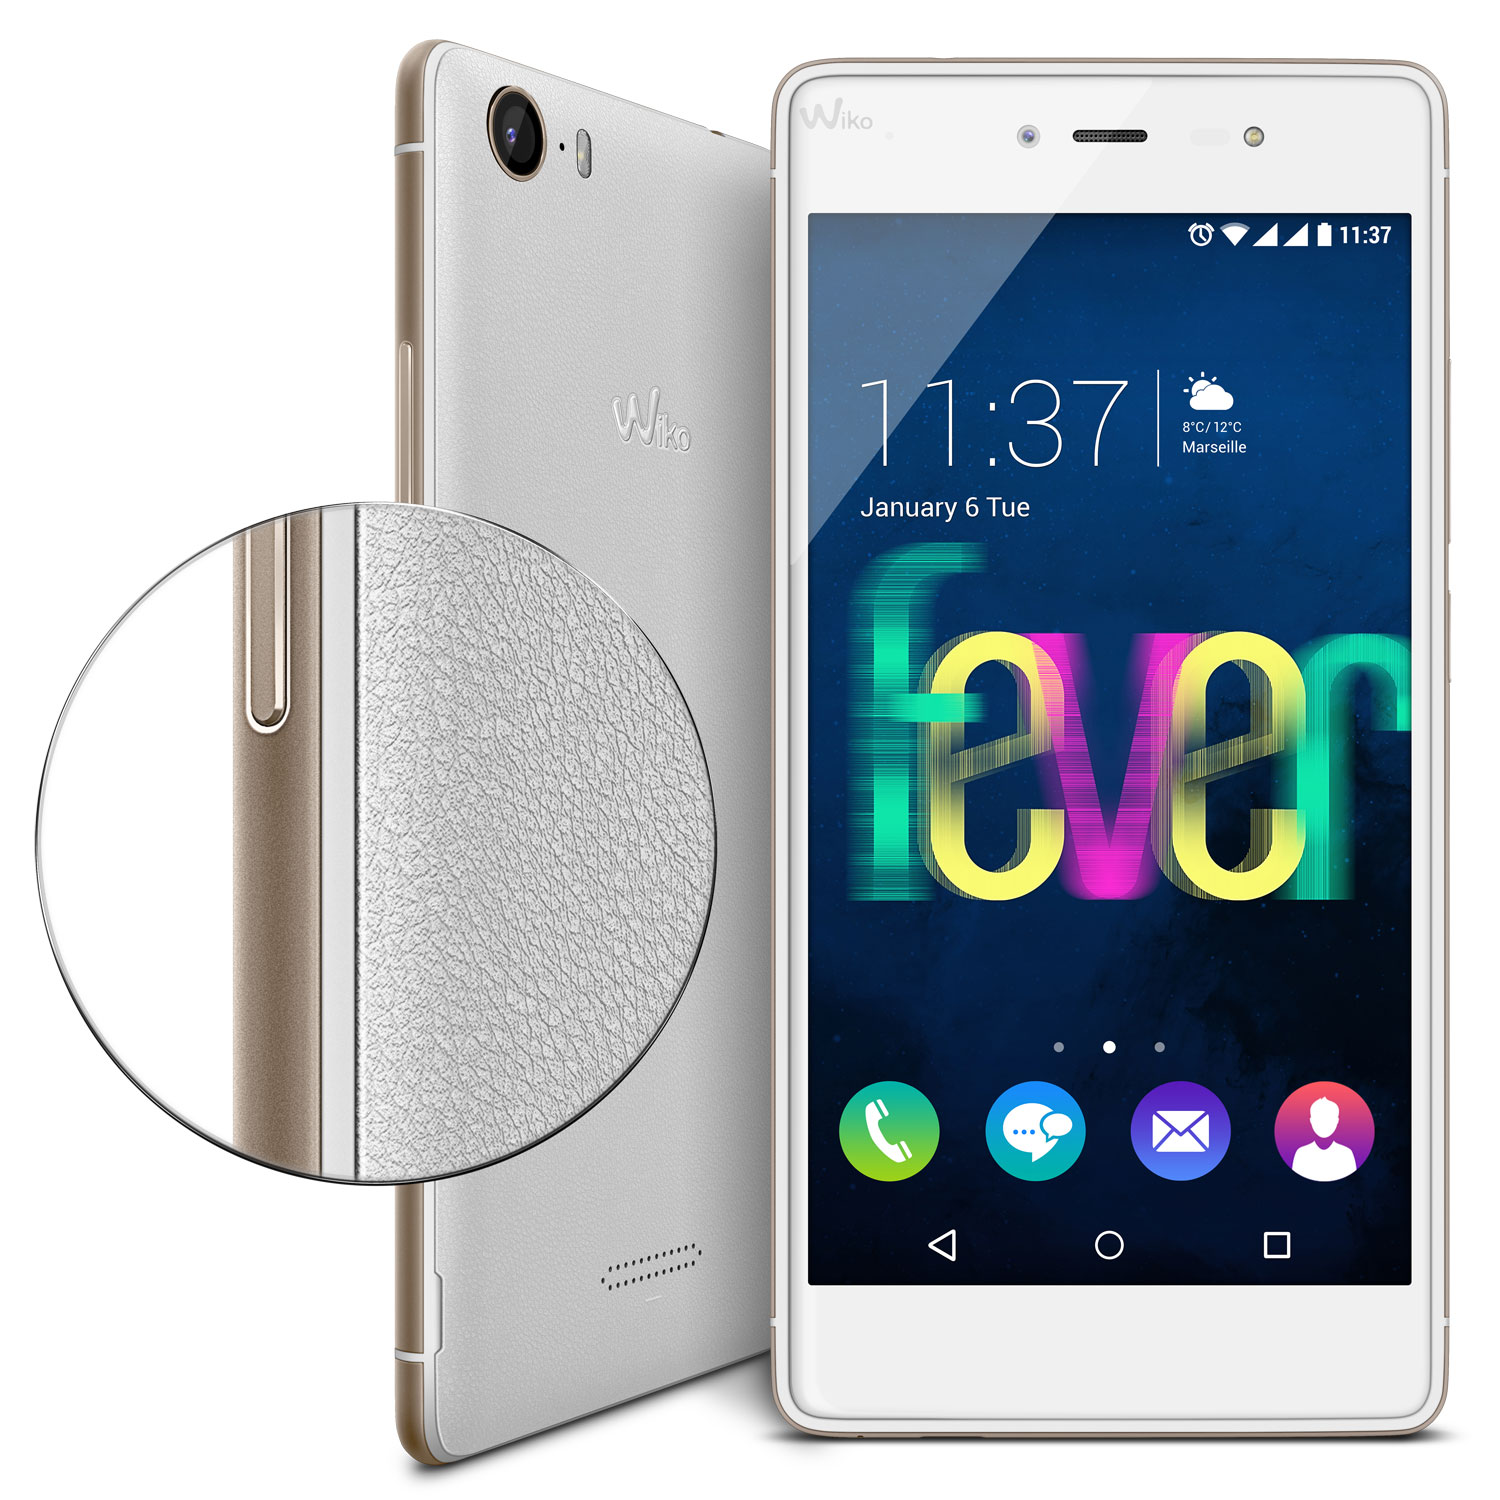 wiko fever 4g blanc or mobile smartphone wiko sur